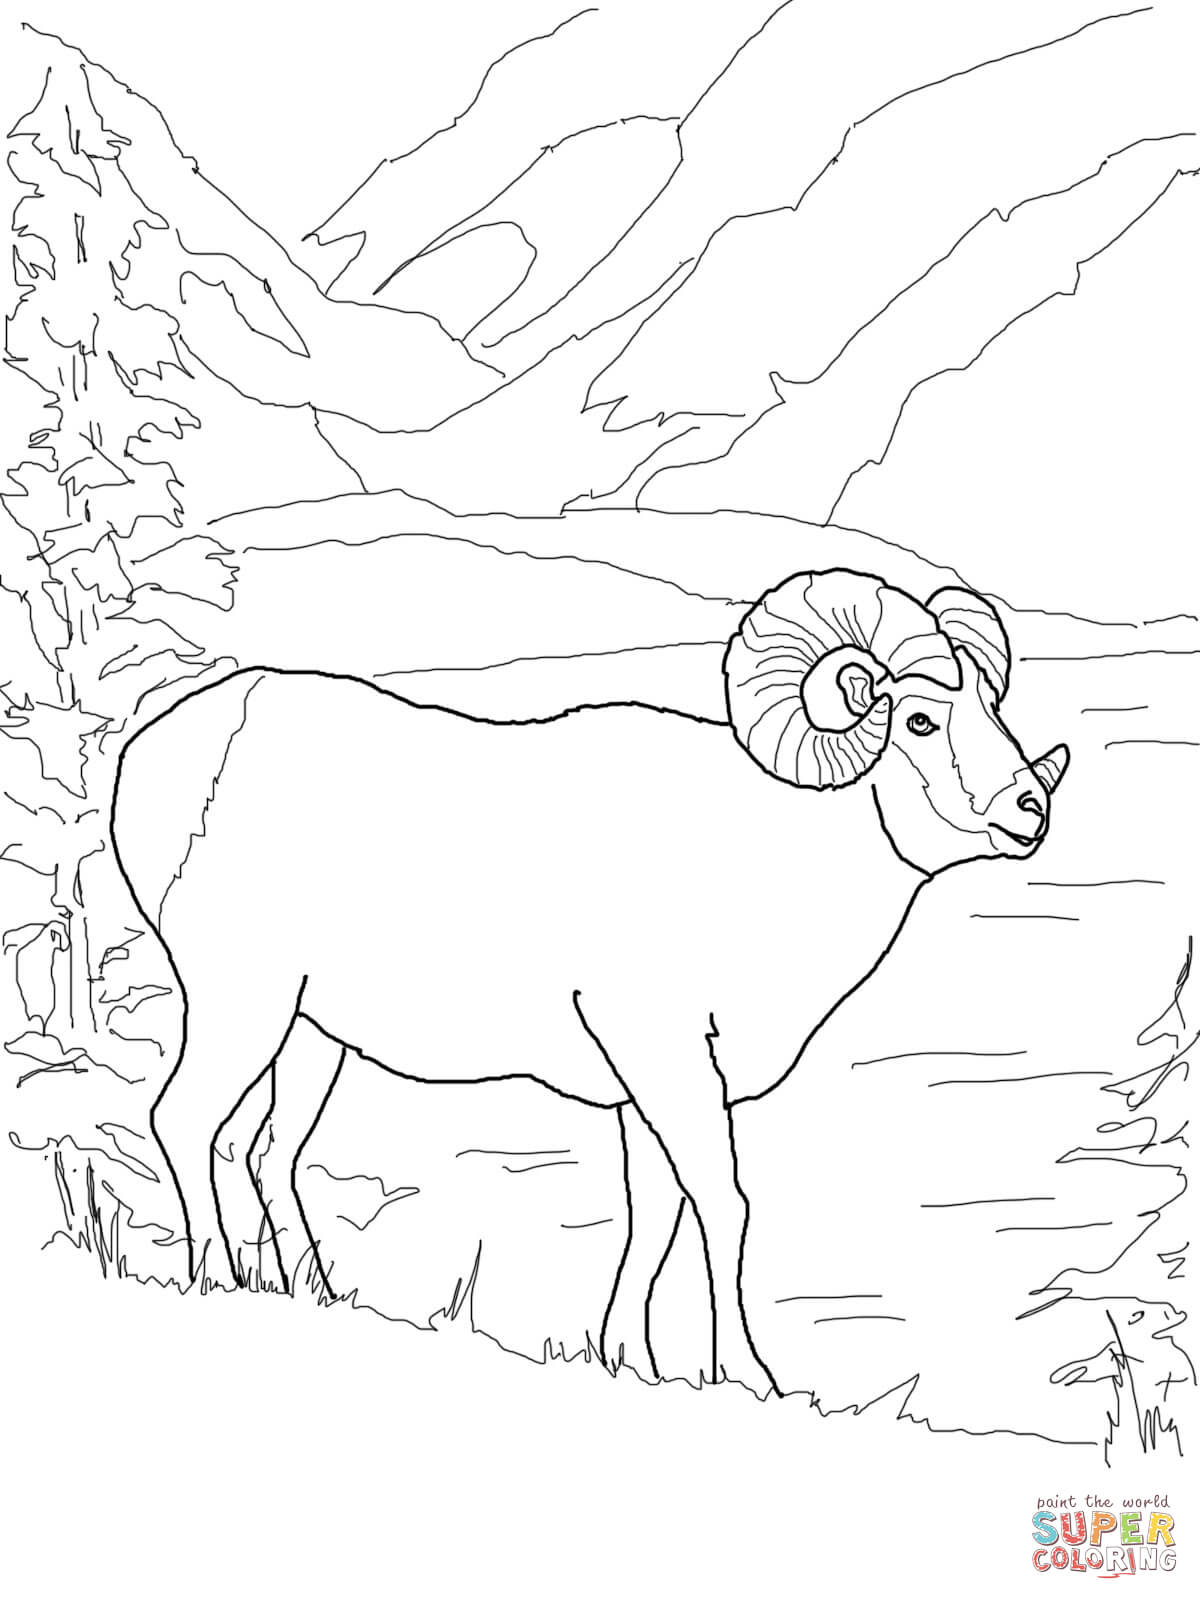 Bighorn Sheep Coloring Pages